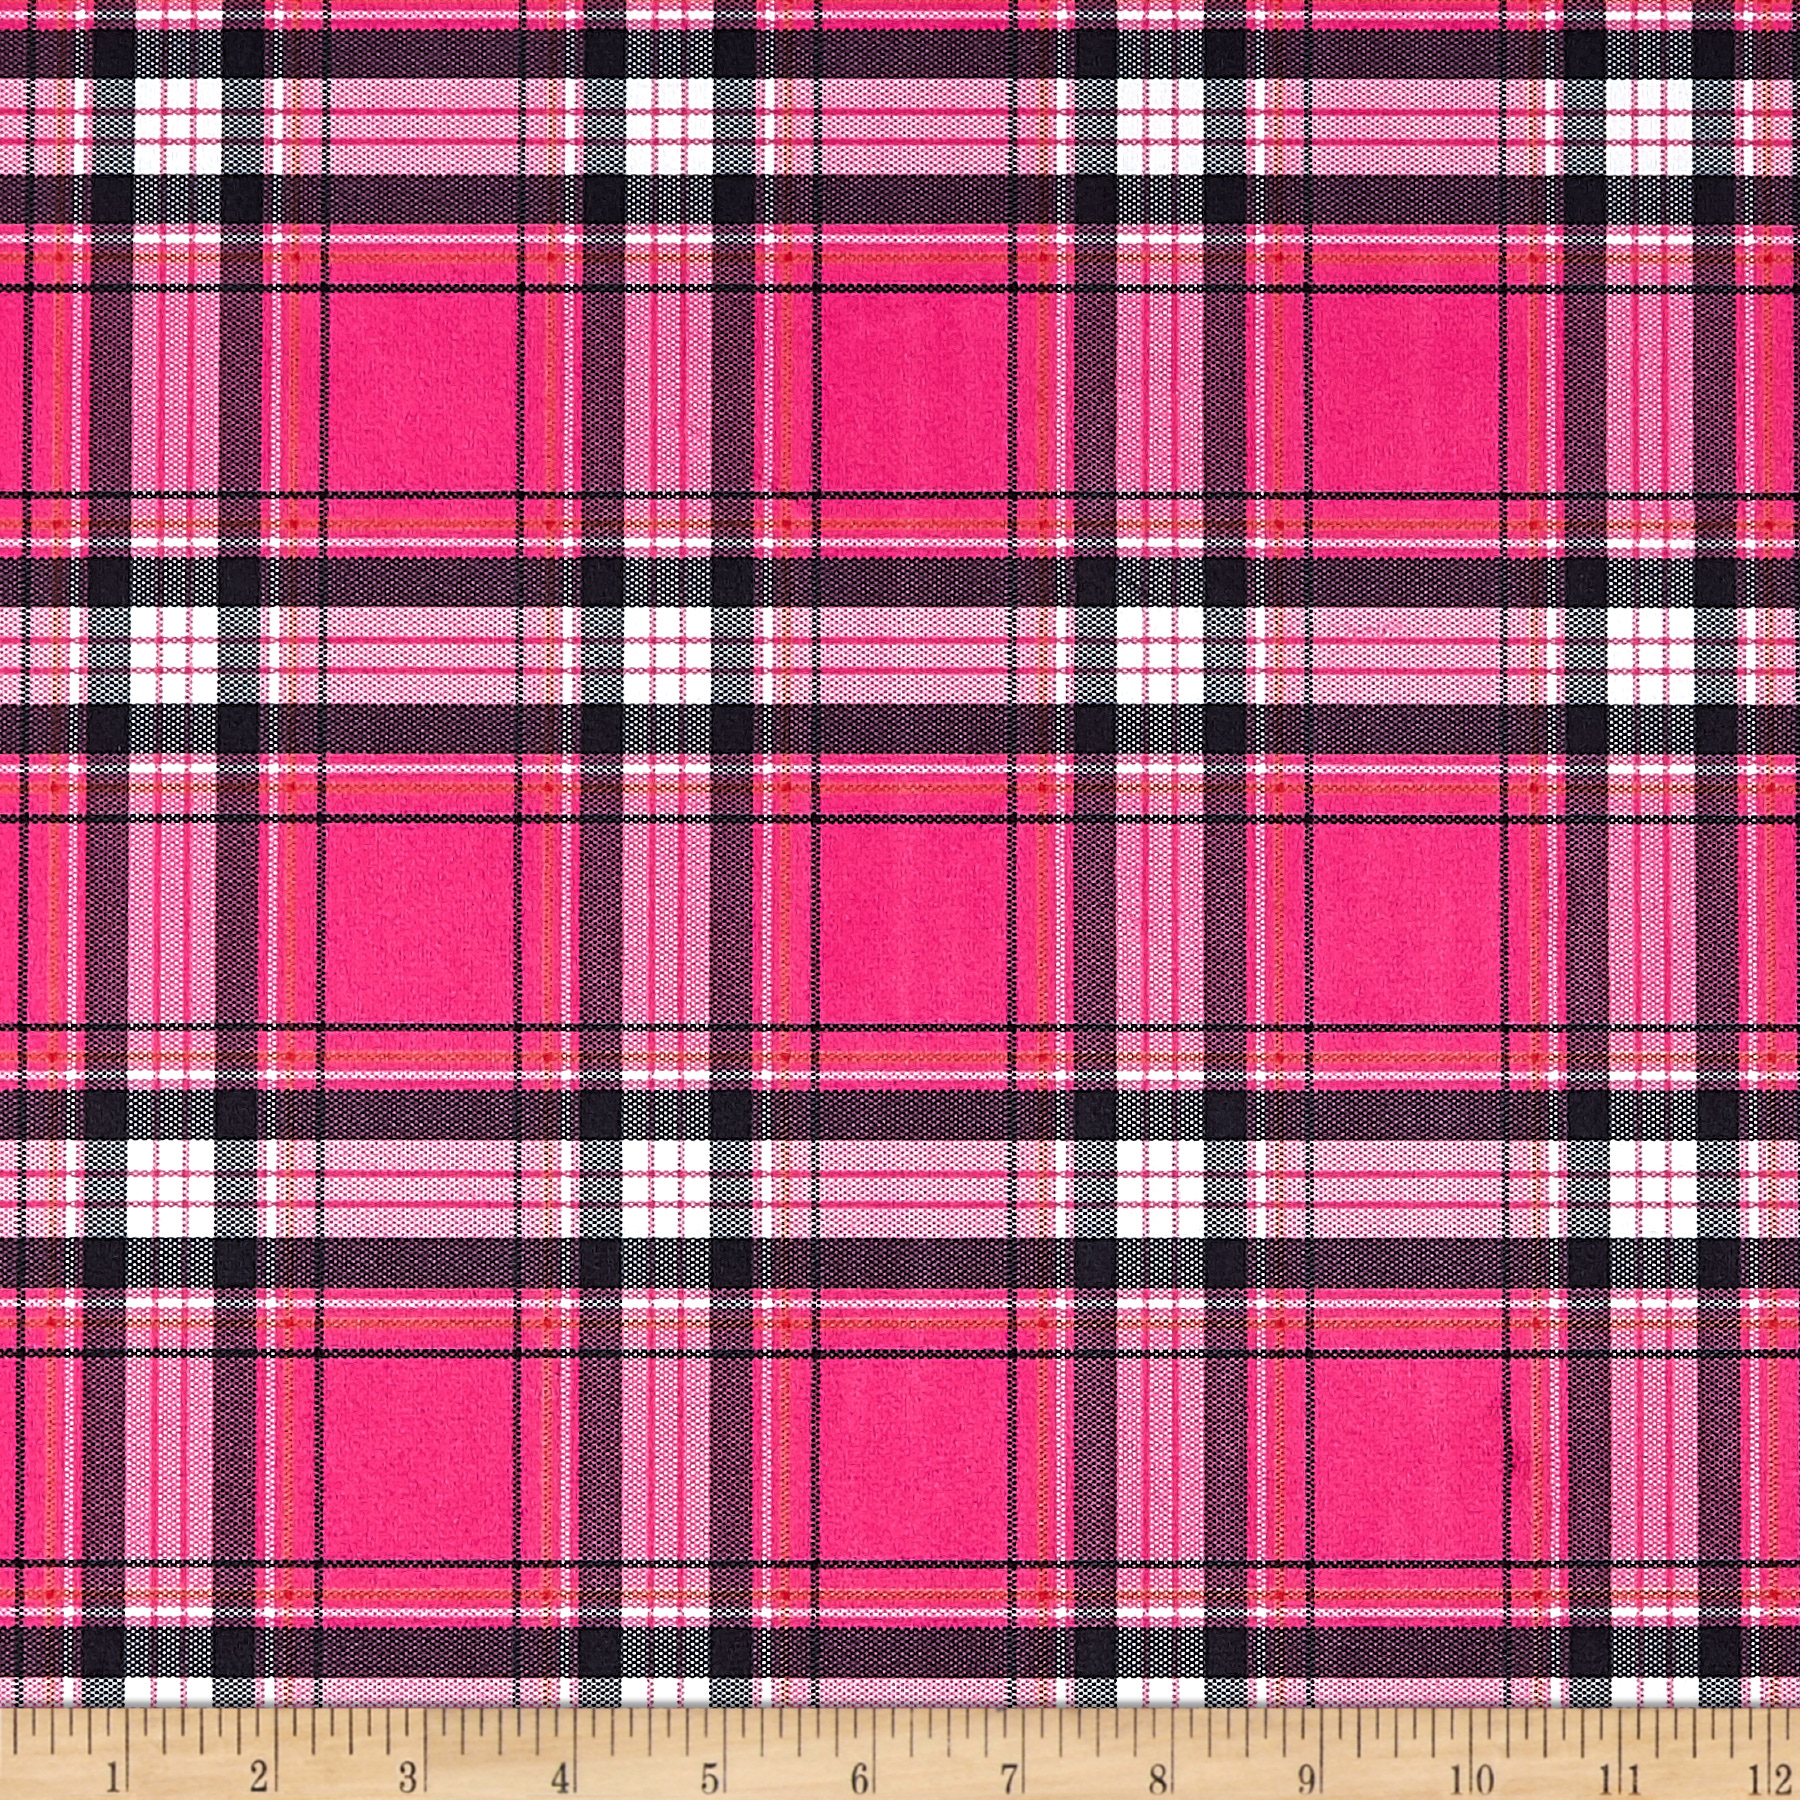 Minky New Plaid Hot Pink/Black Fabric